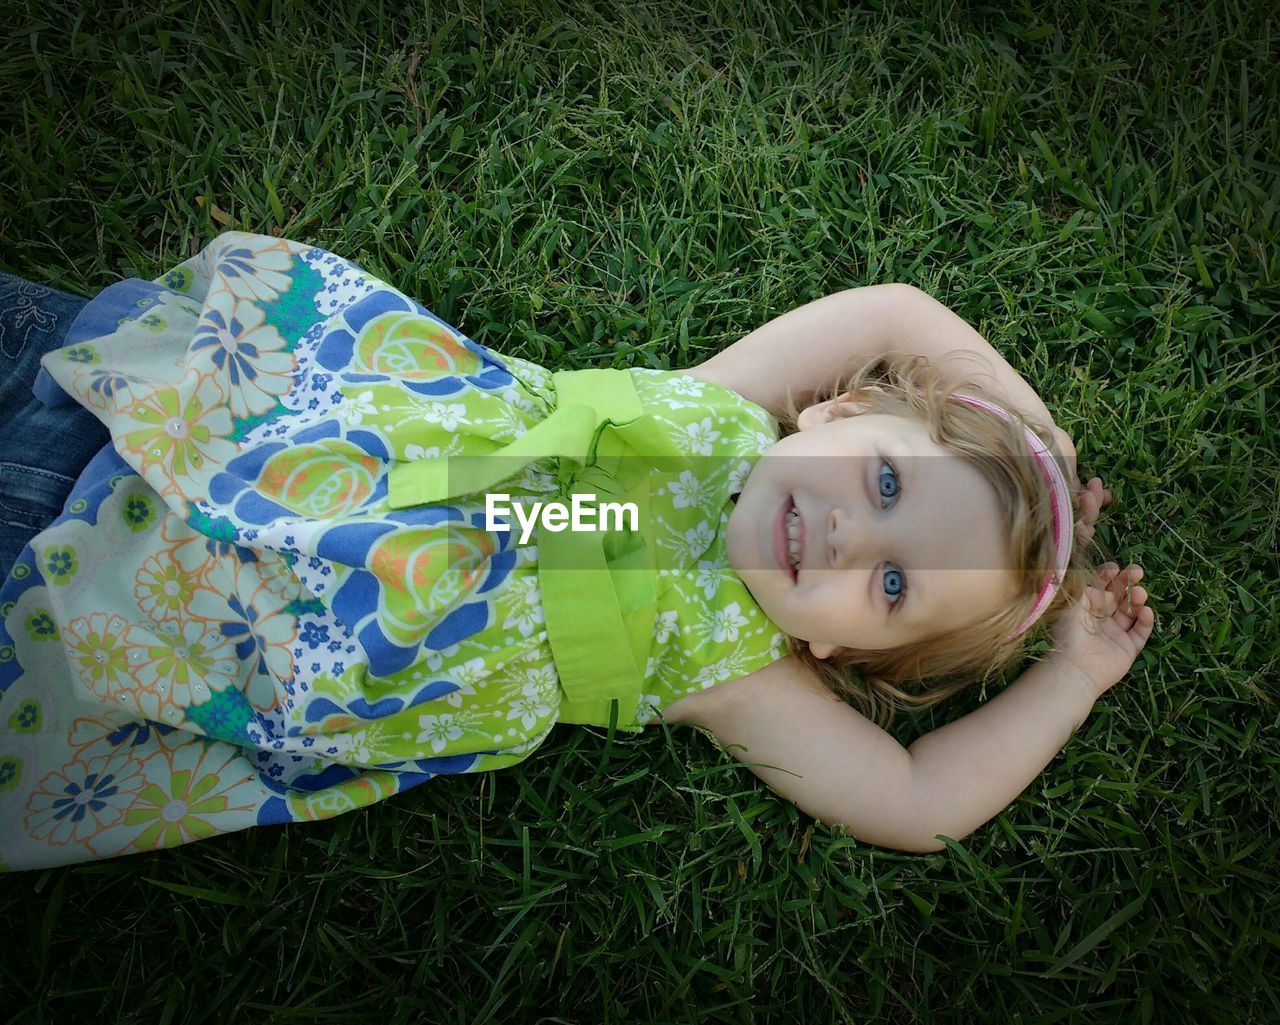 grass, childhood, looking at camera, portrait, high angle view, innocence, real people, field, lying down, girls, lying on back, one person, smiling, happiness, cute, day, leisure activity, green color, relaxation, growth, outdoors, nature